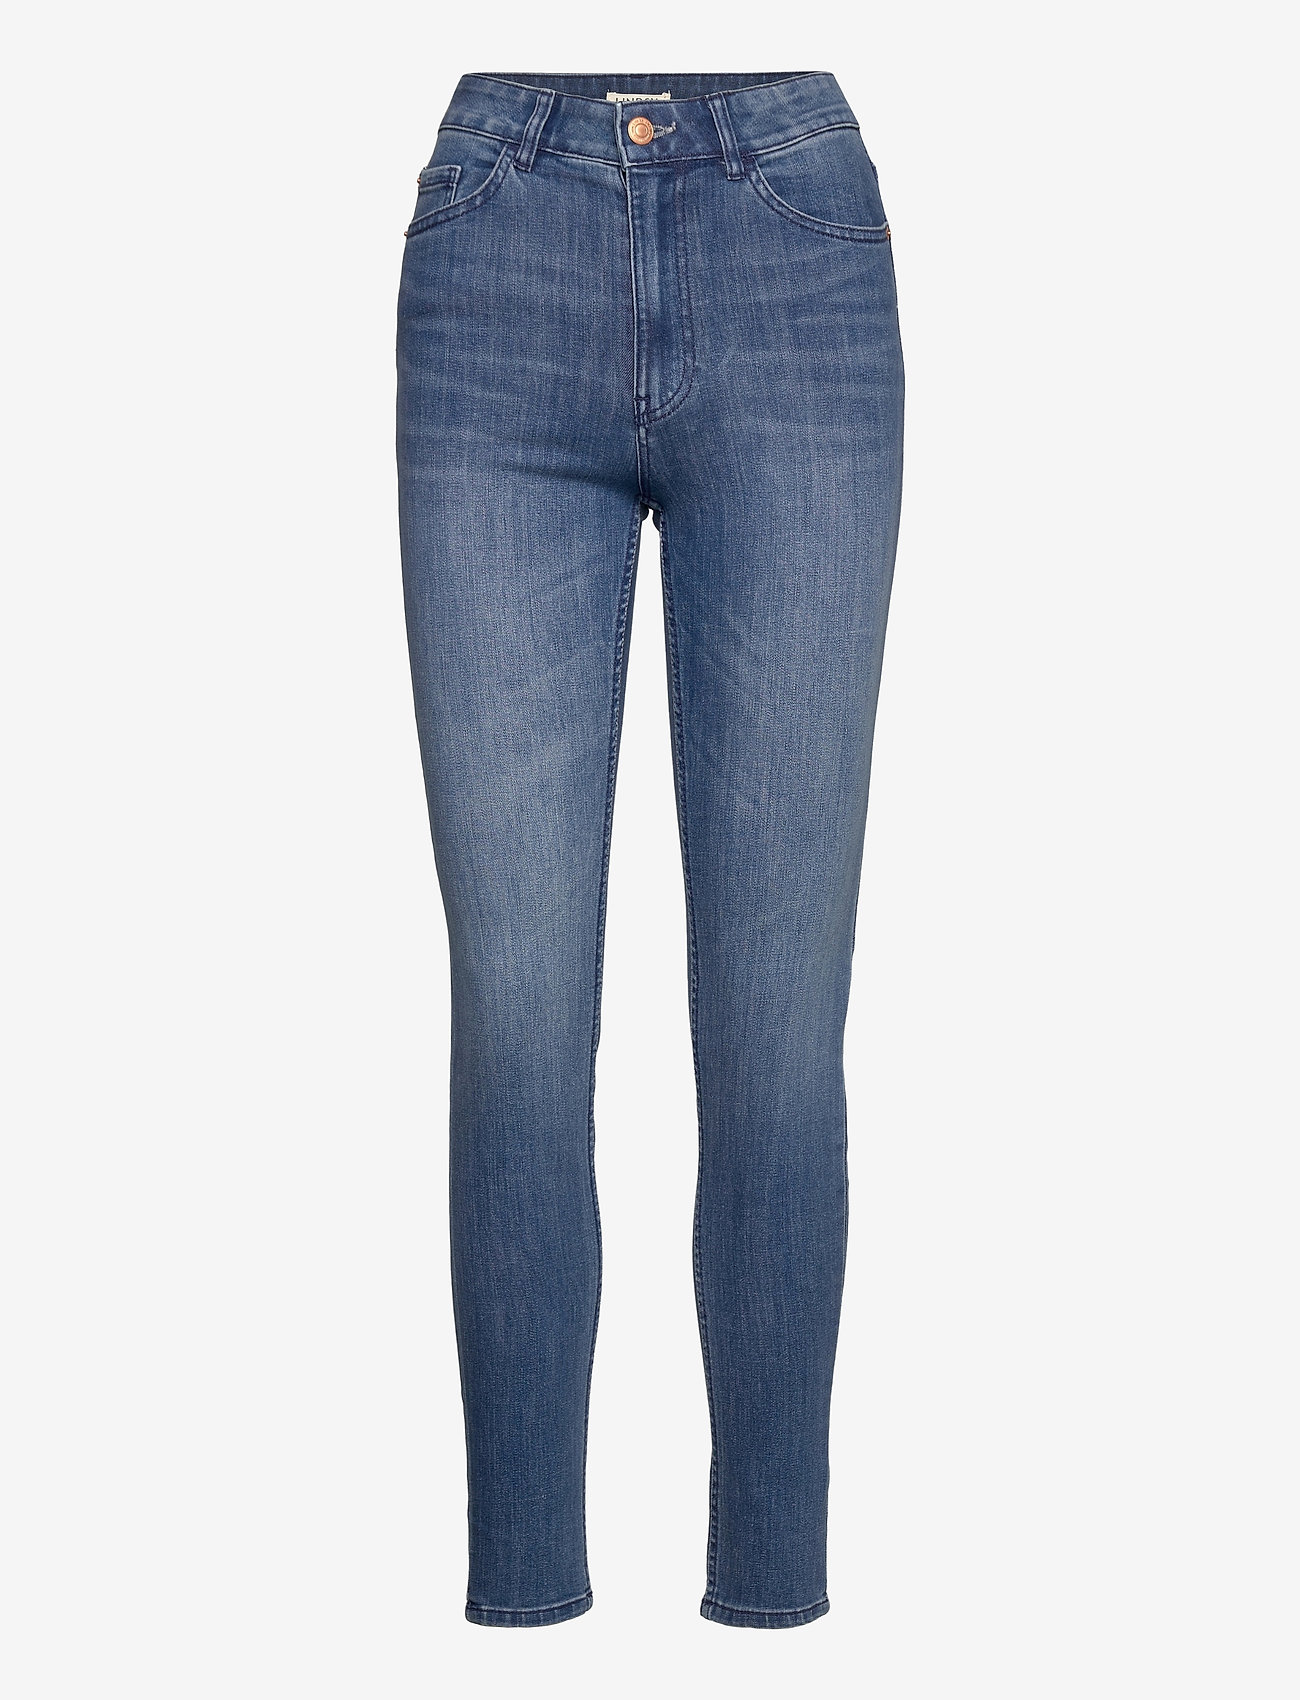 Lindex - Denim trousers Vera mid blue - slim jeans - denim - 0